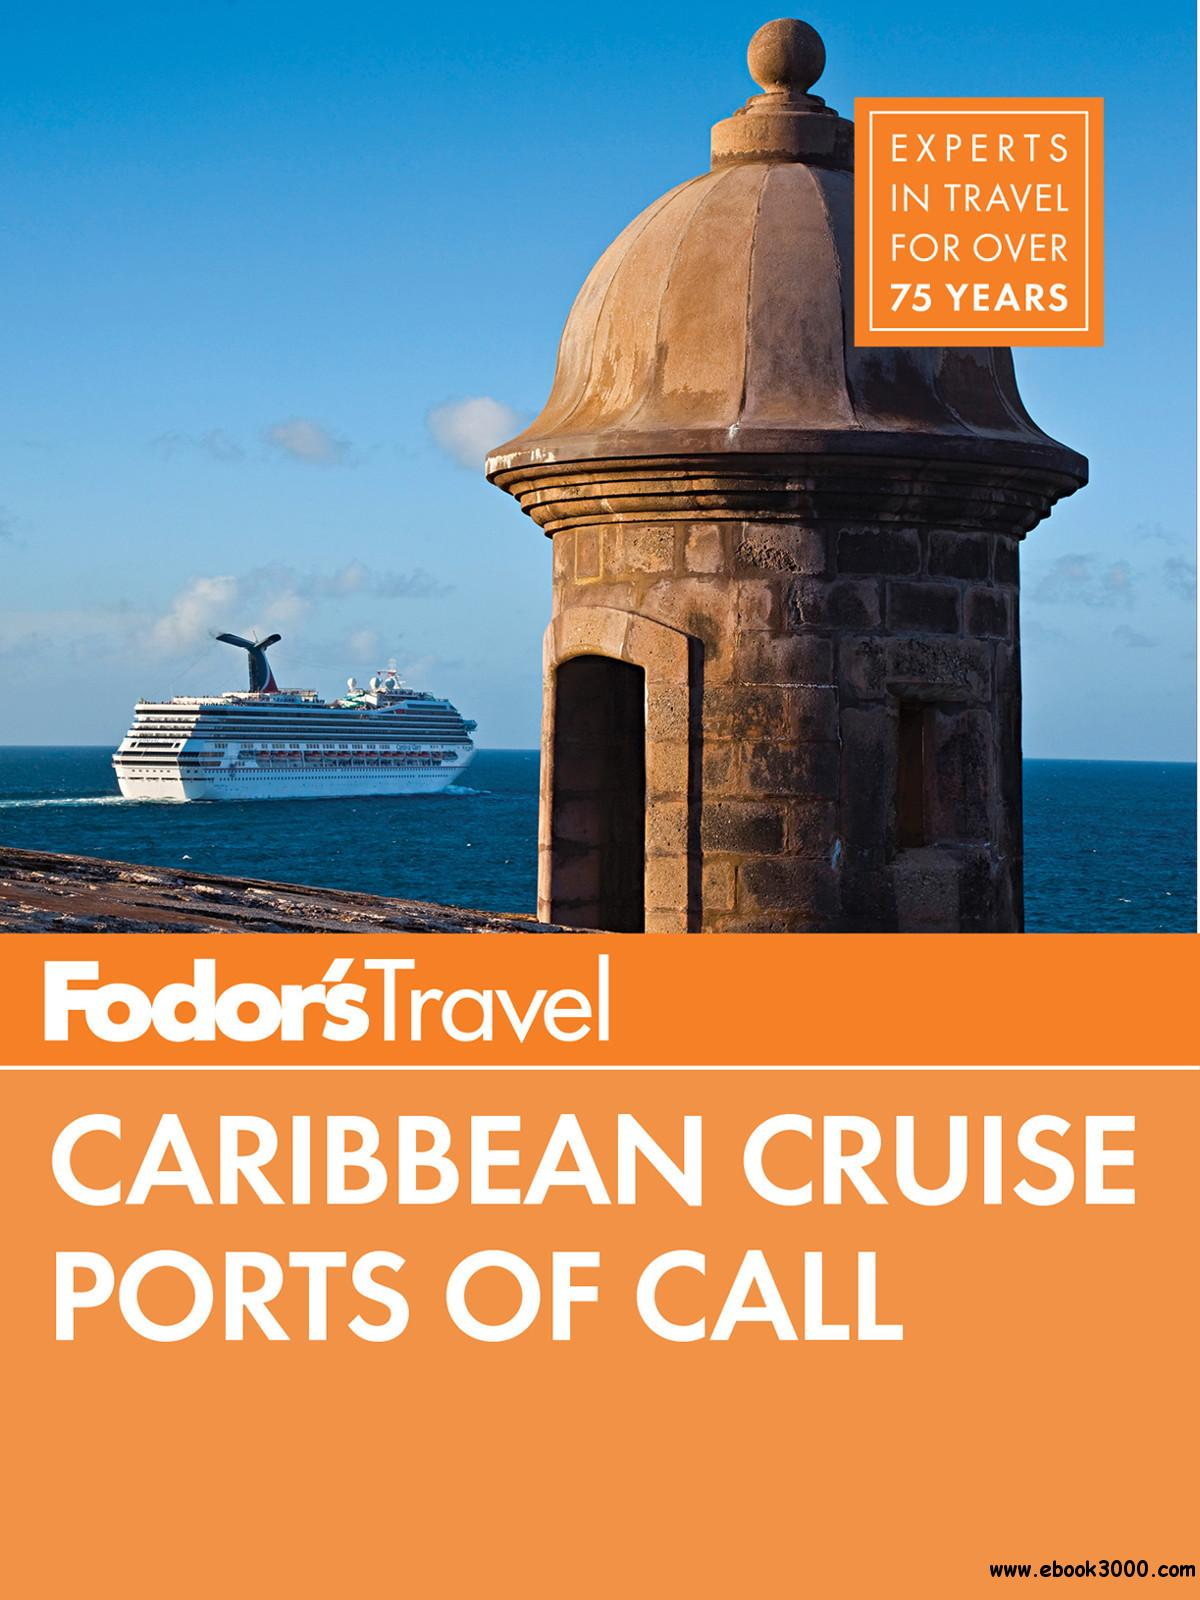 Fodor's Caribbean Cruise Ports of Call (Travel Guide) free download